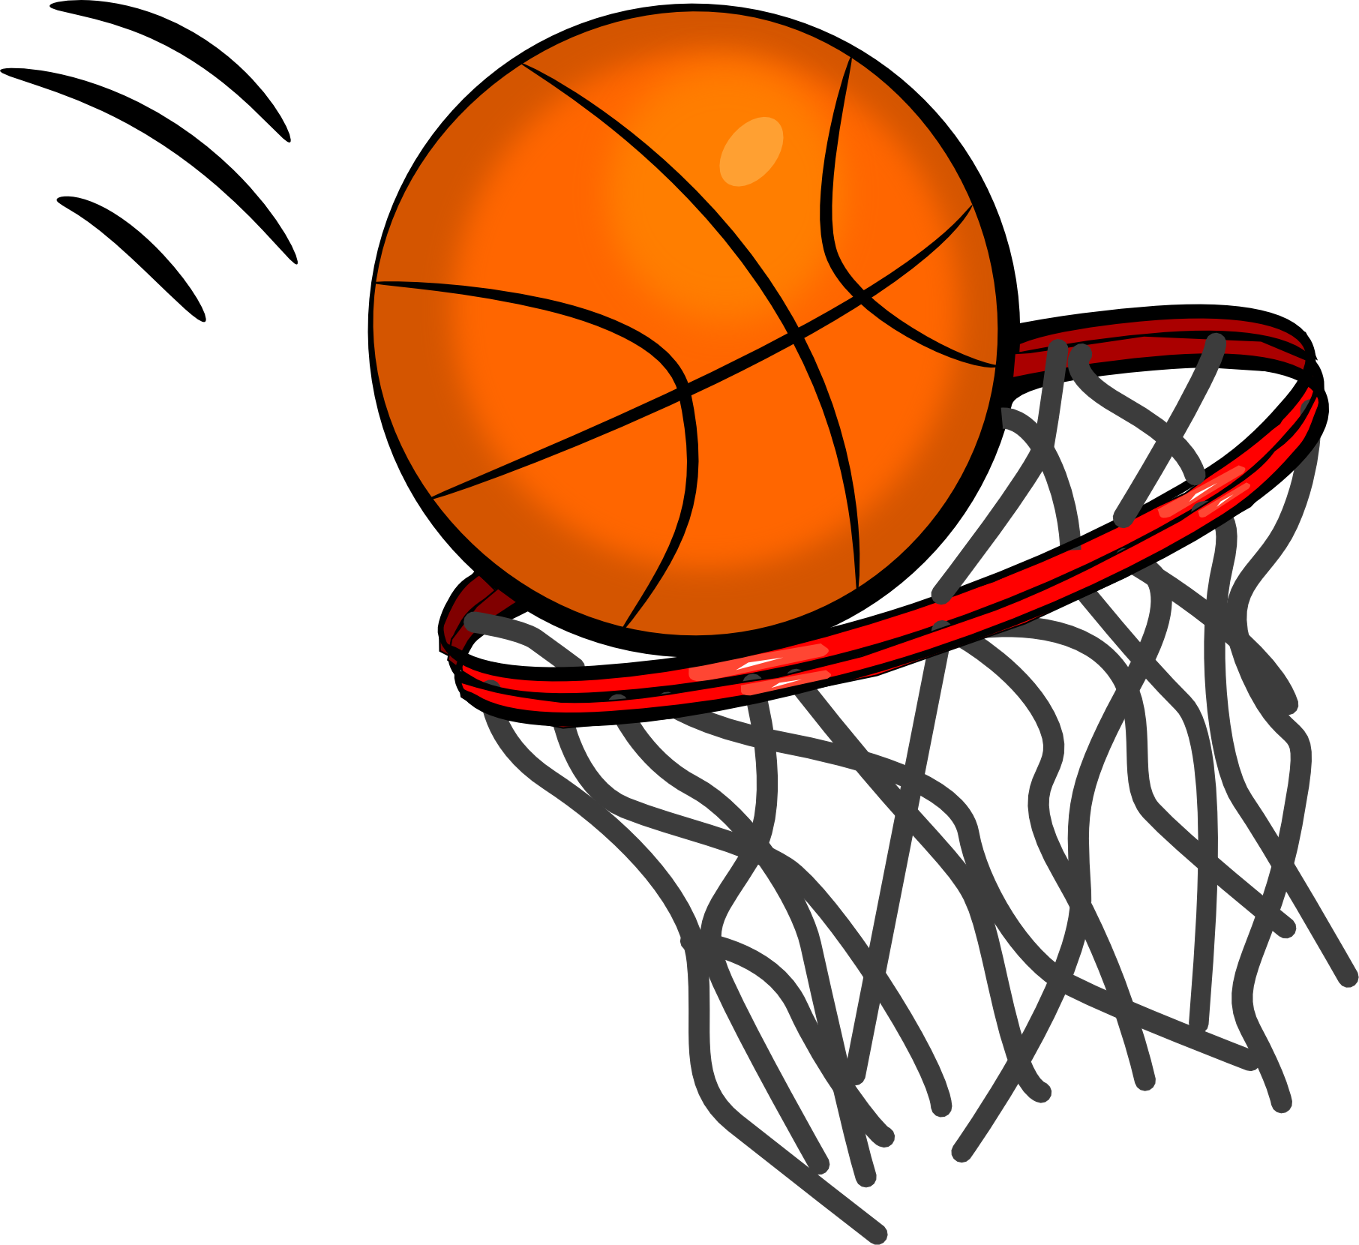 Cartoon Basketball Clipart